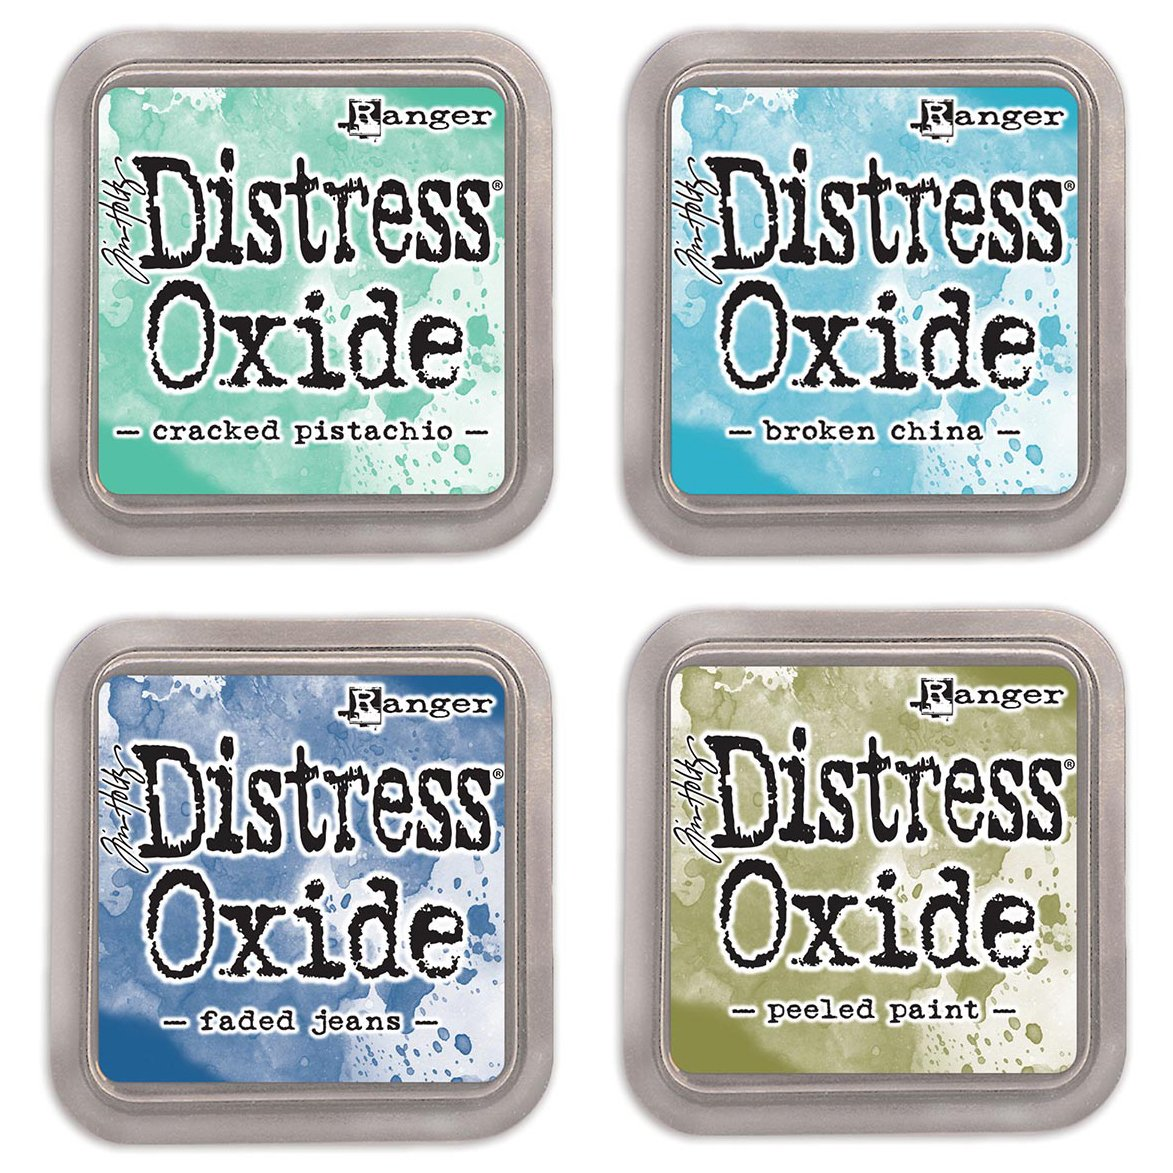 Ranger Tim Holtz Distress Oxide Ink Pads Bundle of 4 Colors - Cracked Pistachio, Broken China, Faded Jeans and Peeled Paint